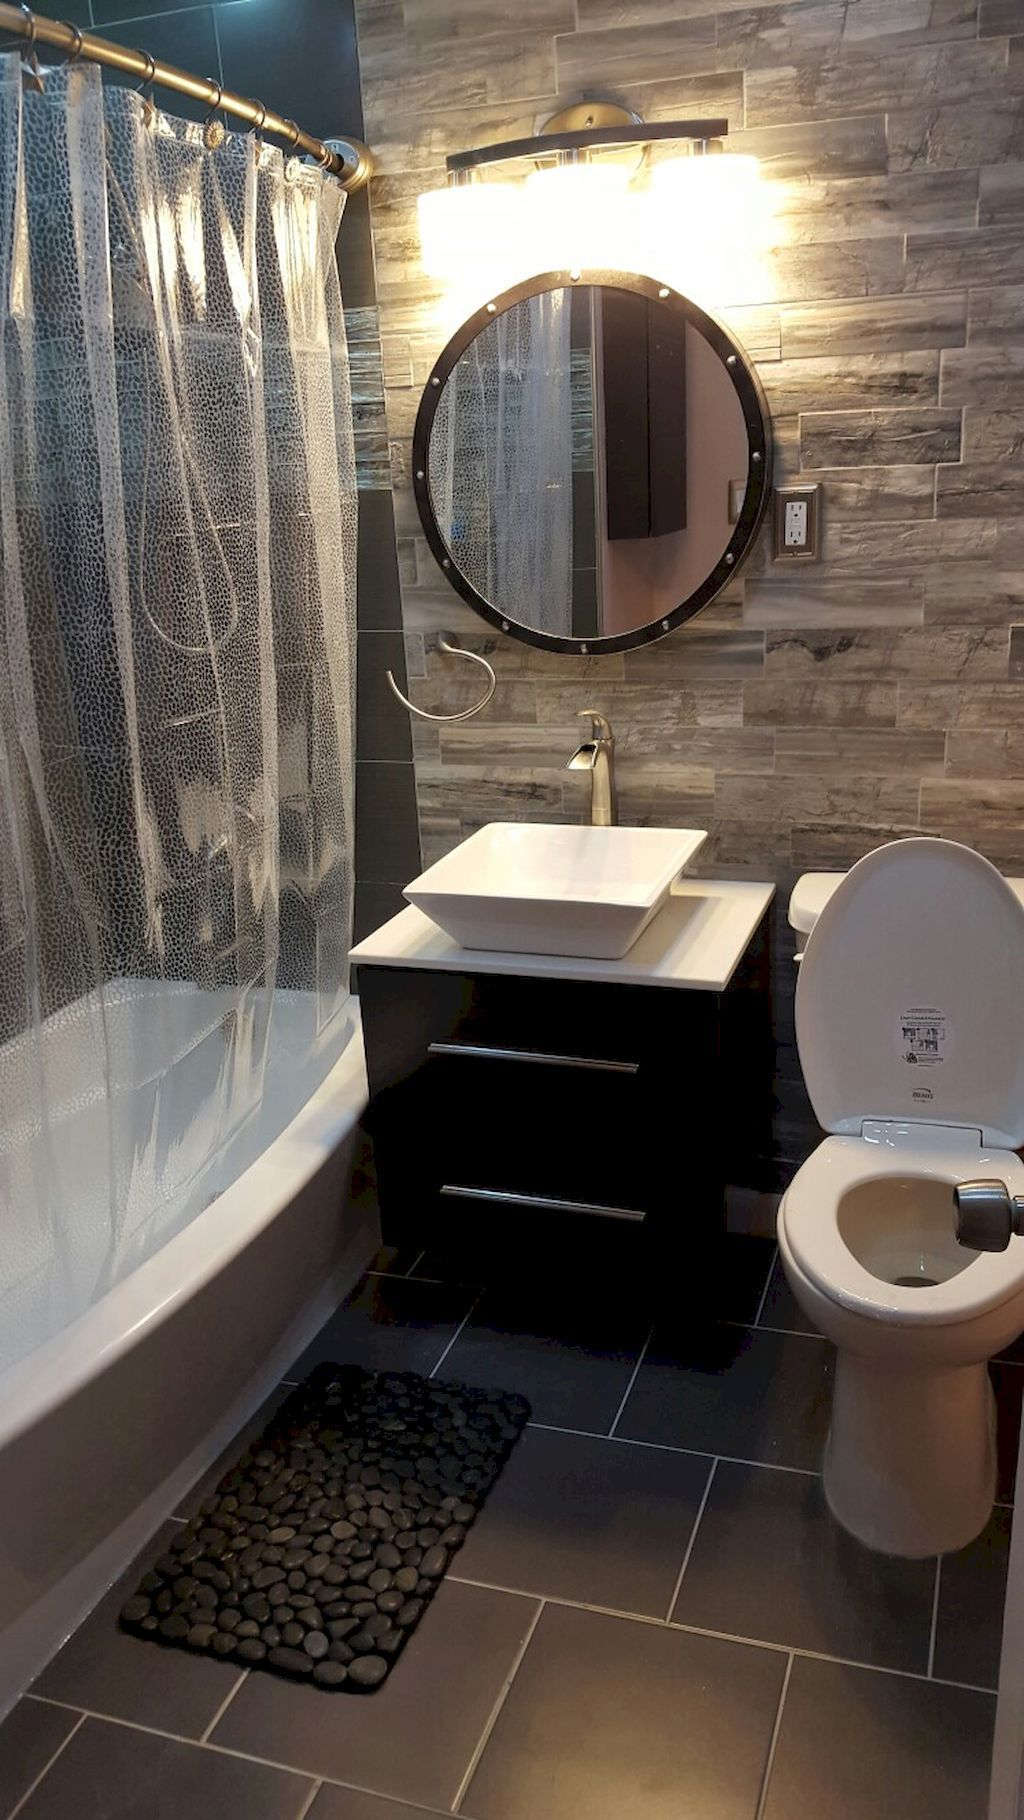 photos of remodeled bathrooms%0A Cool    Efficient Small Bathroom Remodel Design Ideas https   roomaniac com